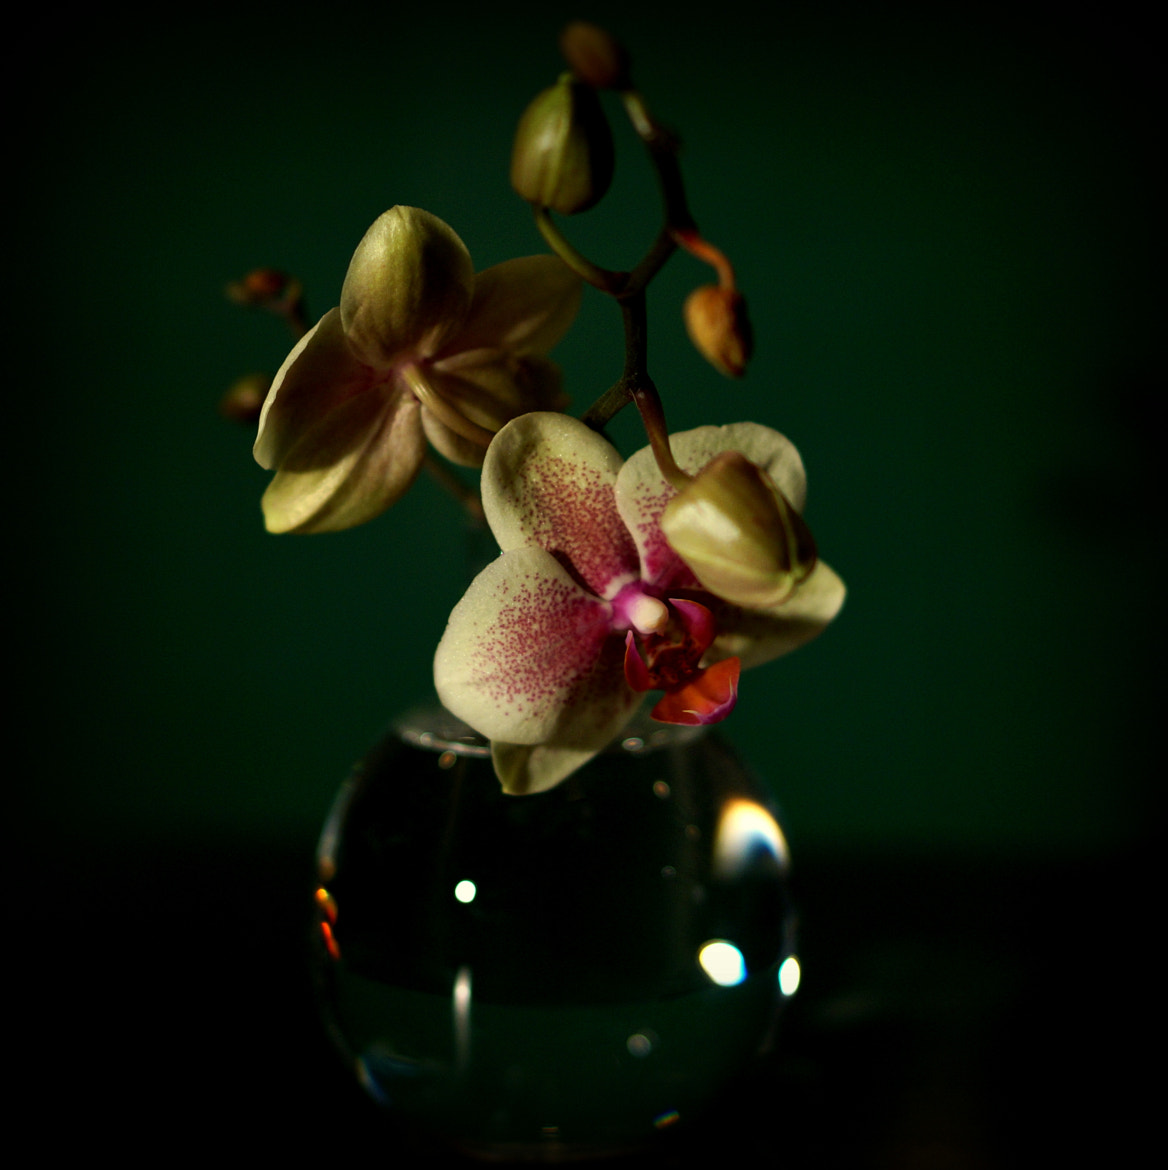 Photograph Orchid 22/365 by Martina Johansson on 500px